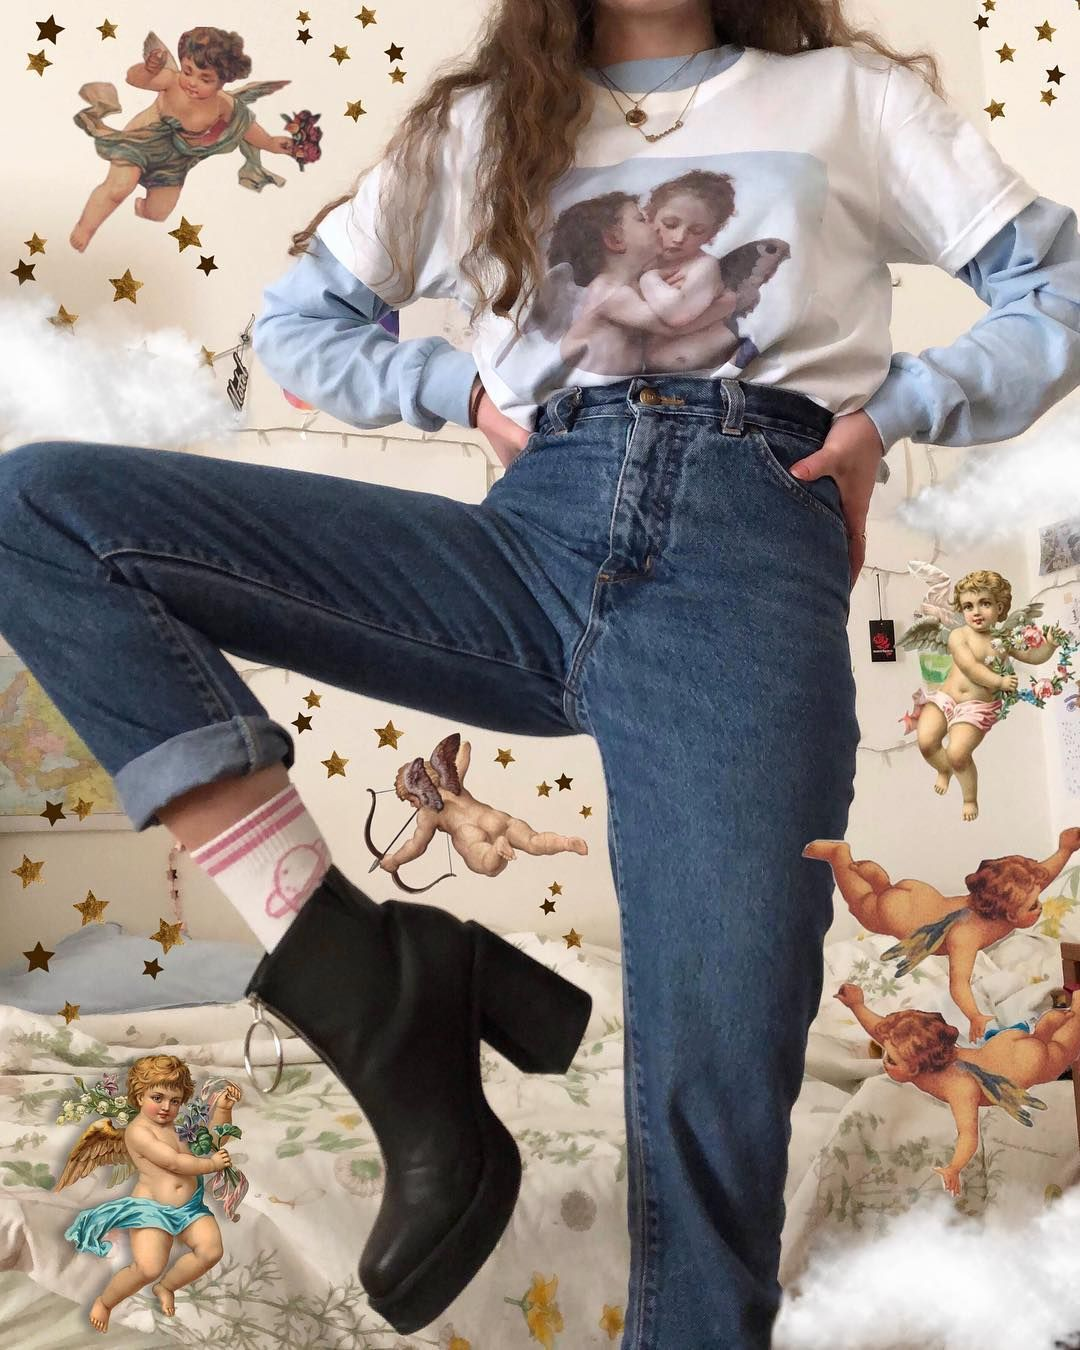 bc5c009b6ecb aesthetic fashion aesthetic clothes aesthetic outfit tumblr style clothing  vintage 90s 80s 70s 60s grunge indie style soft